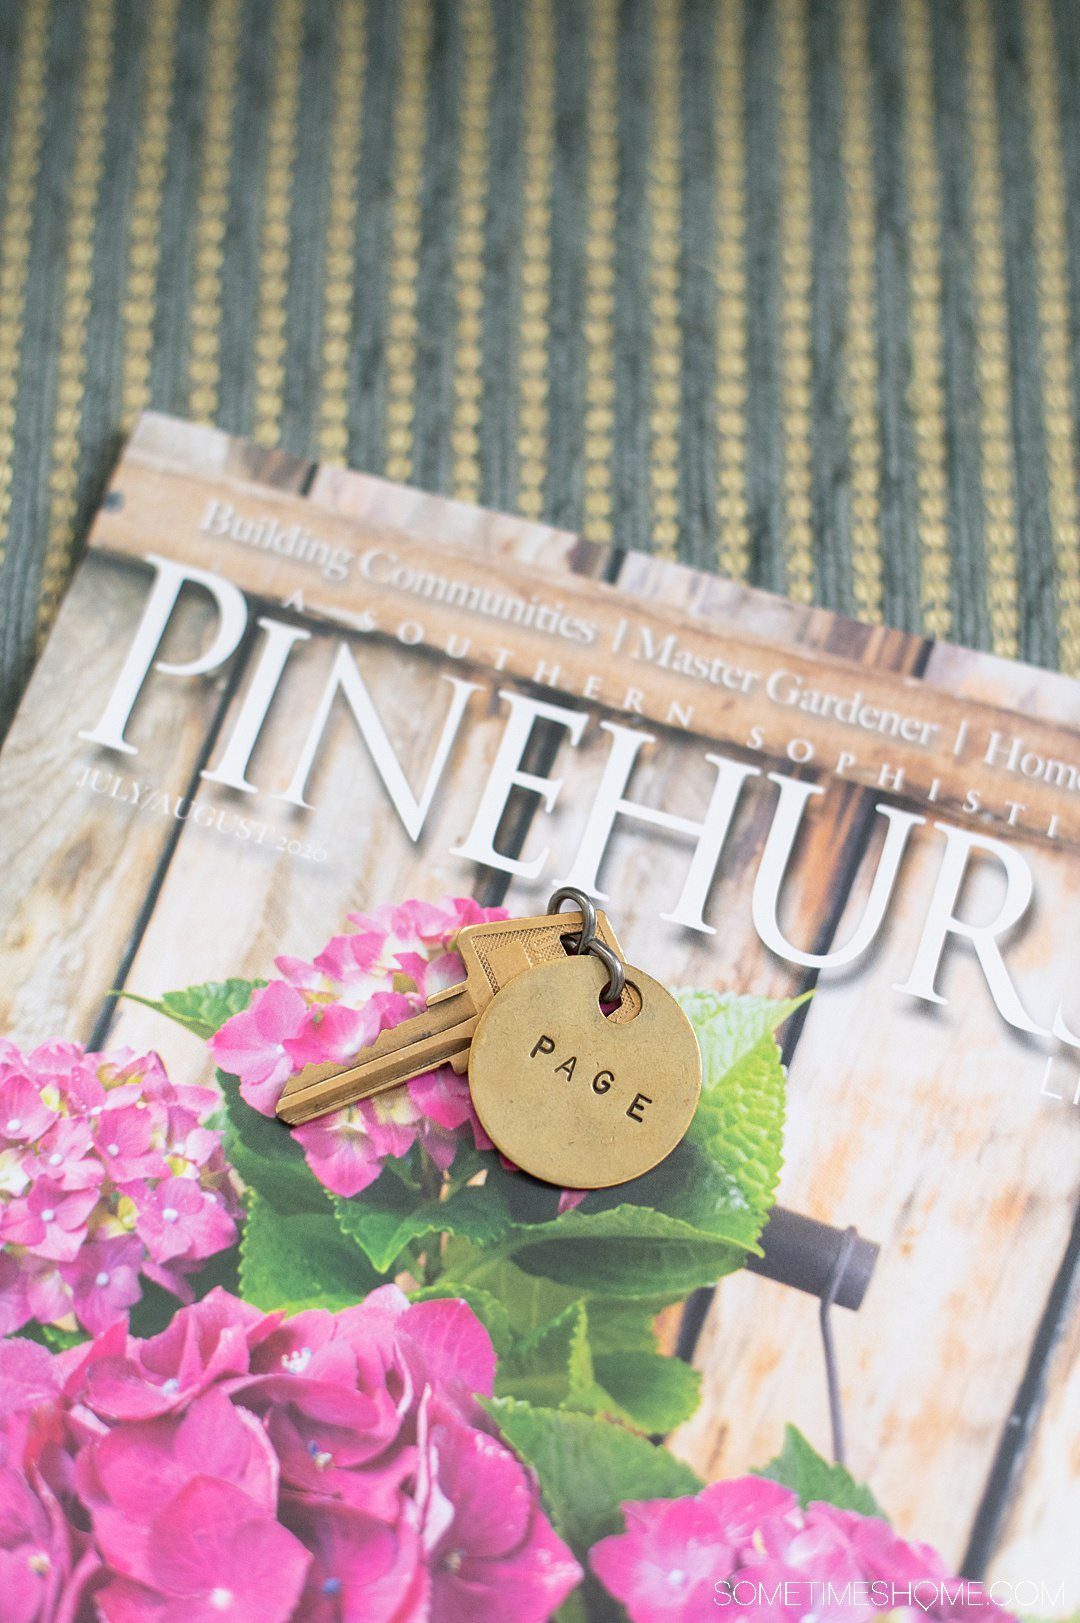 "History of Pinehurst, NC seen here in a magazine cover with pink hydrangea flowers on it and a key chain that reads, ""Page."""